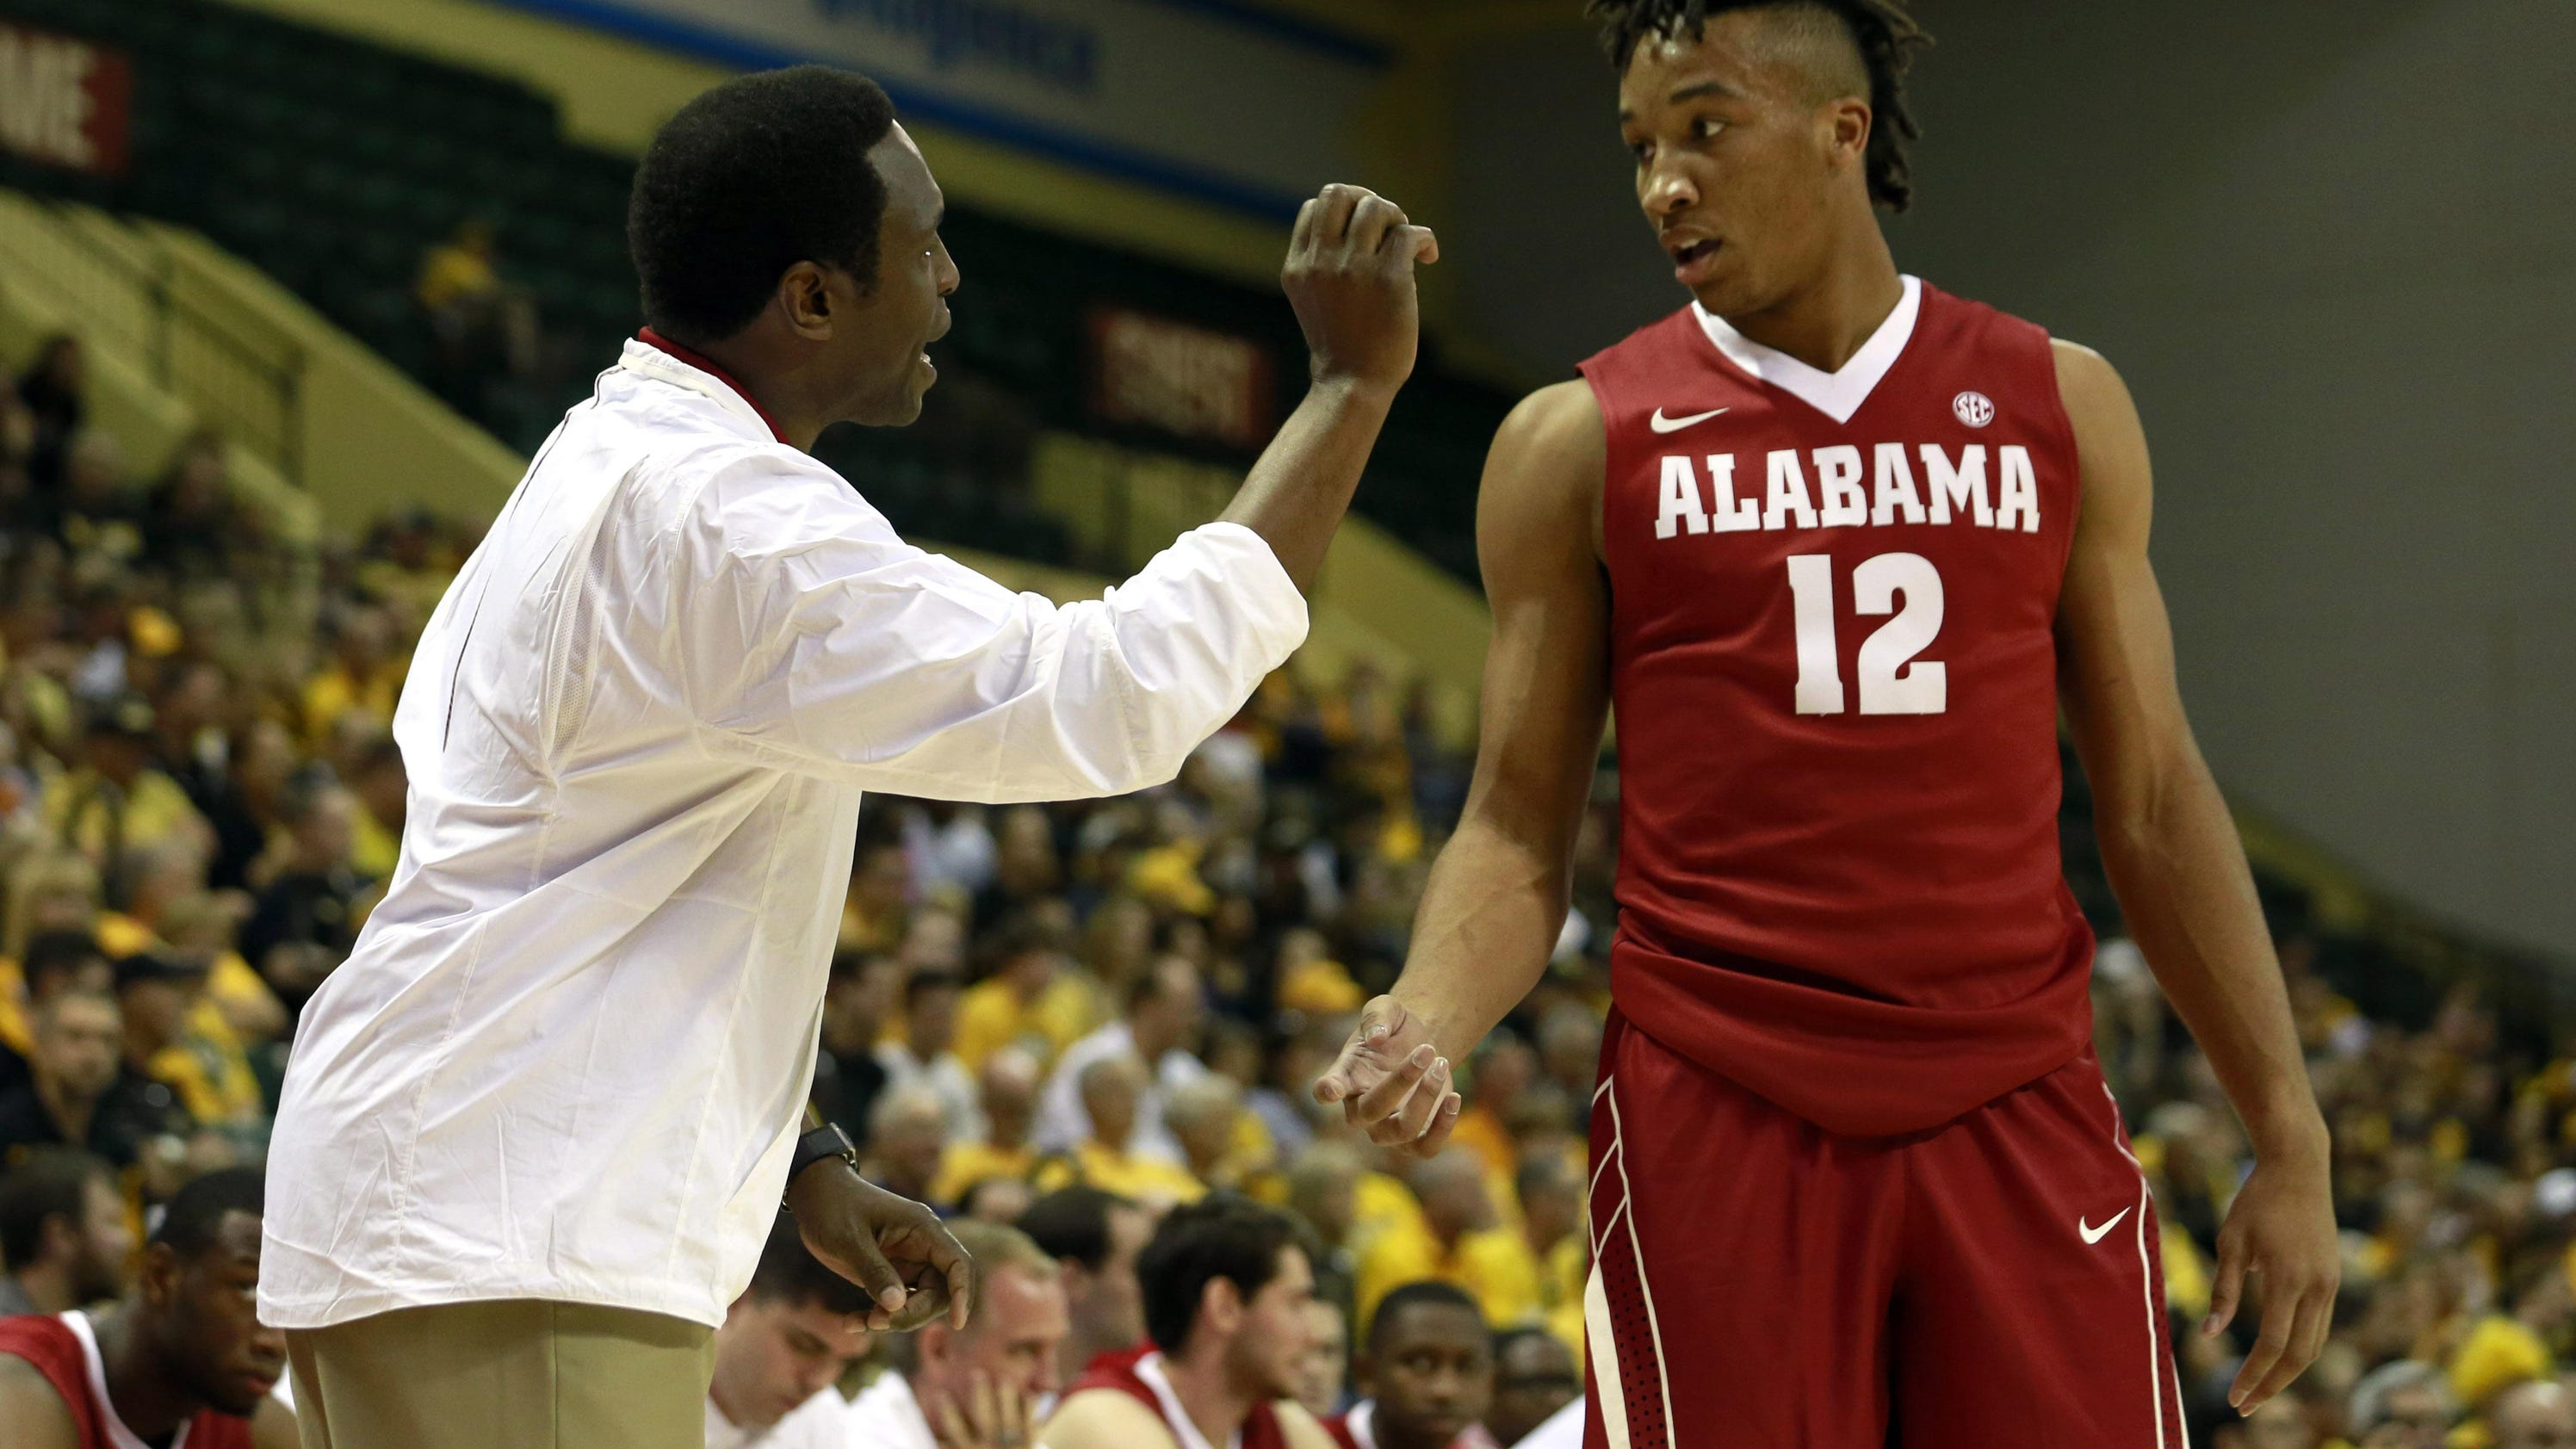 Men's basketball preview: Alabama at Southern Miss